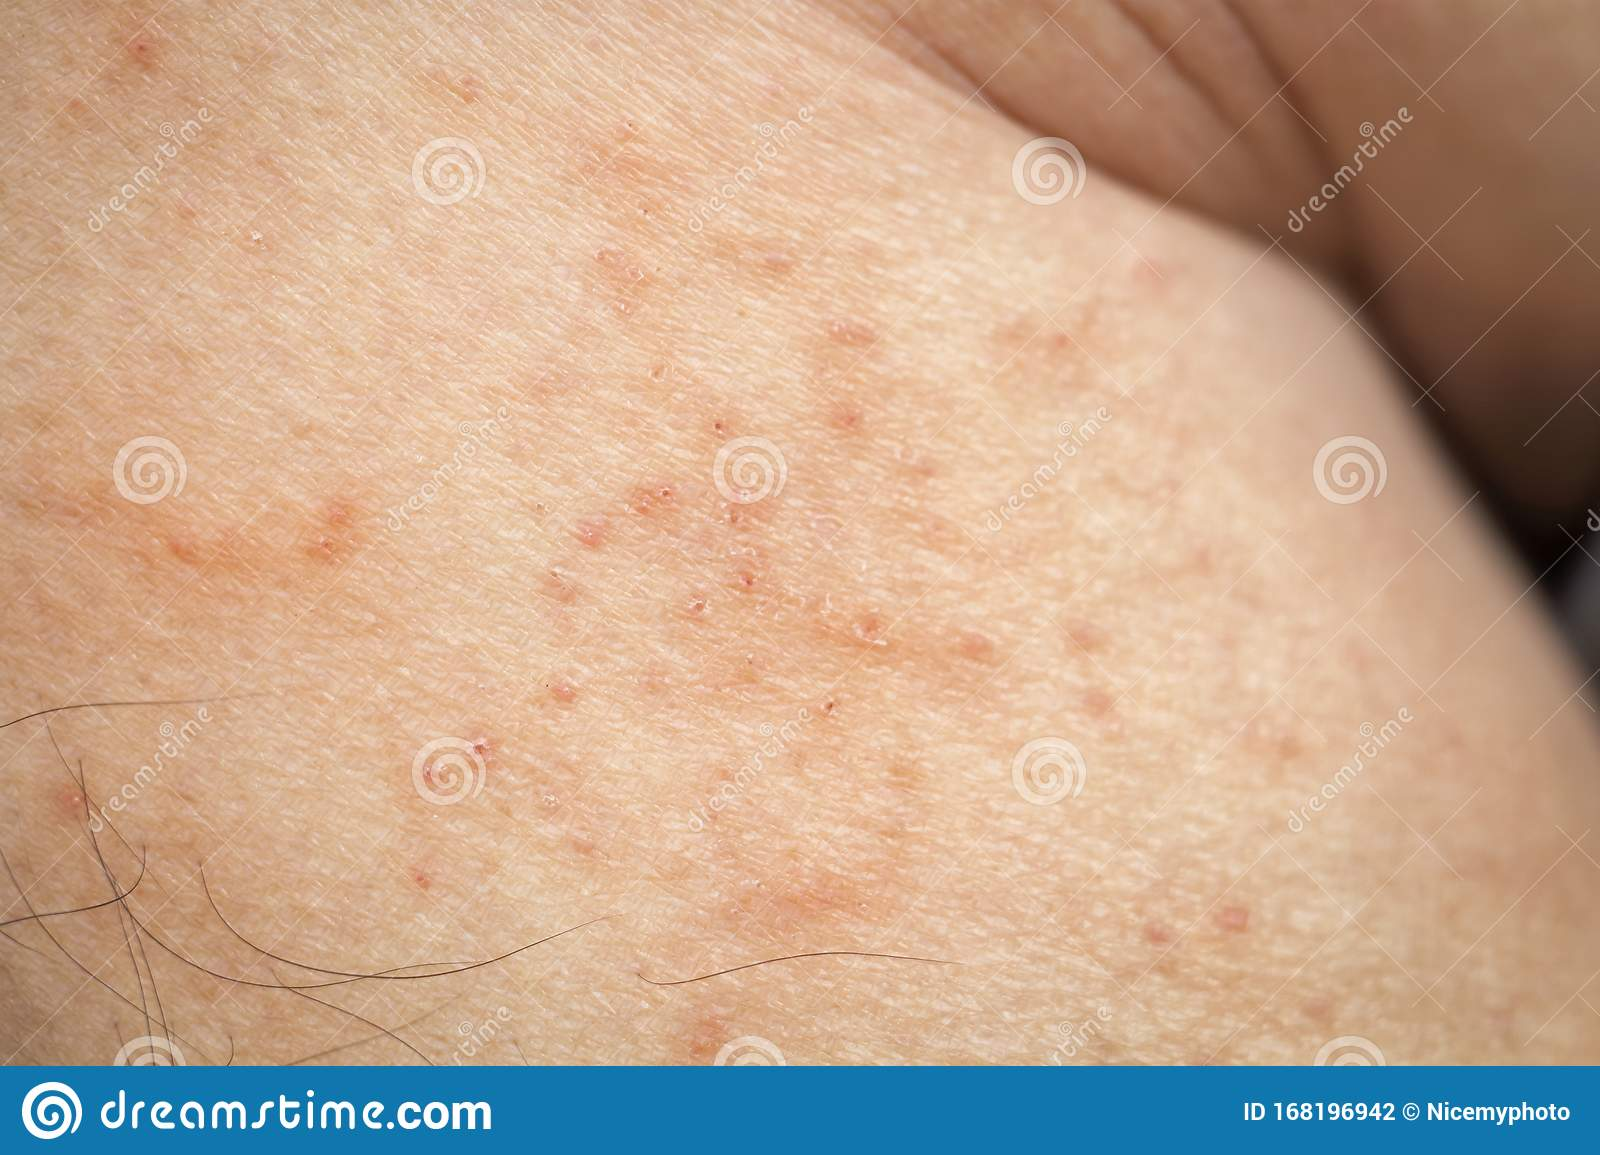 Skin Disease Winter Healthcare Dry Cracking Skin And Rash Red Of Leg On During Weather Cold Dermatologist And Treatment Stock Photo Image Of Itchy Atopic 168196942